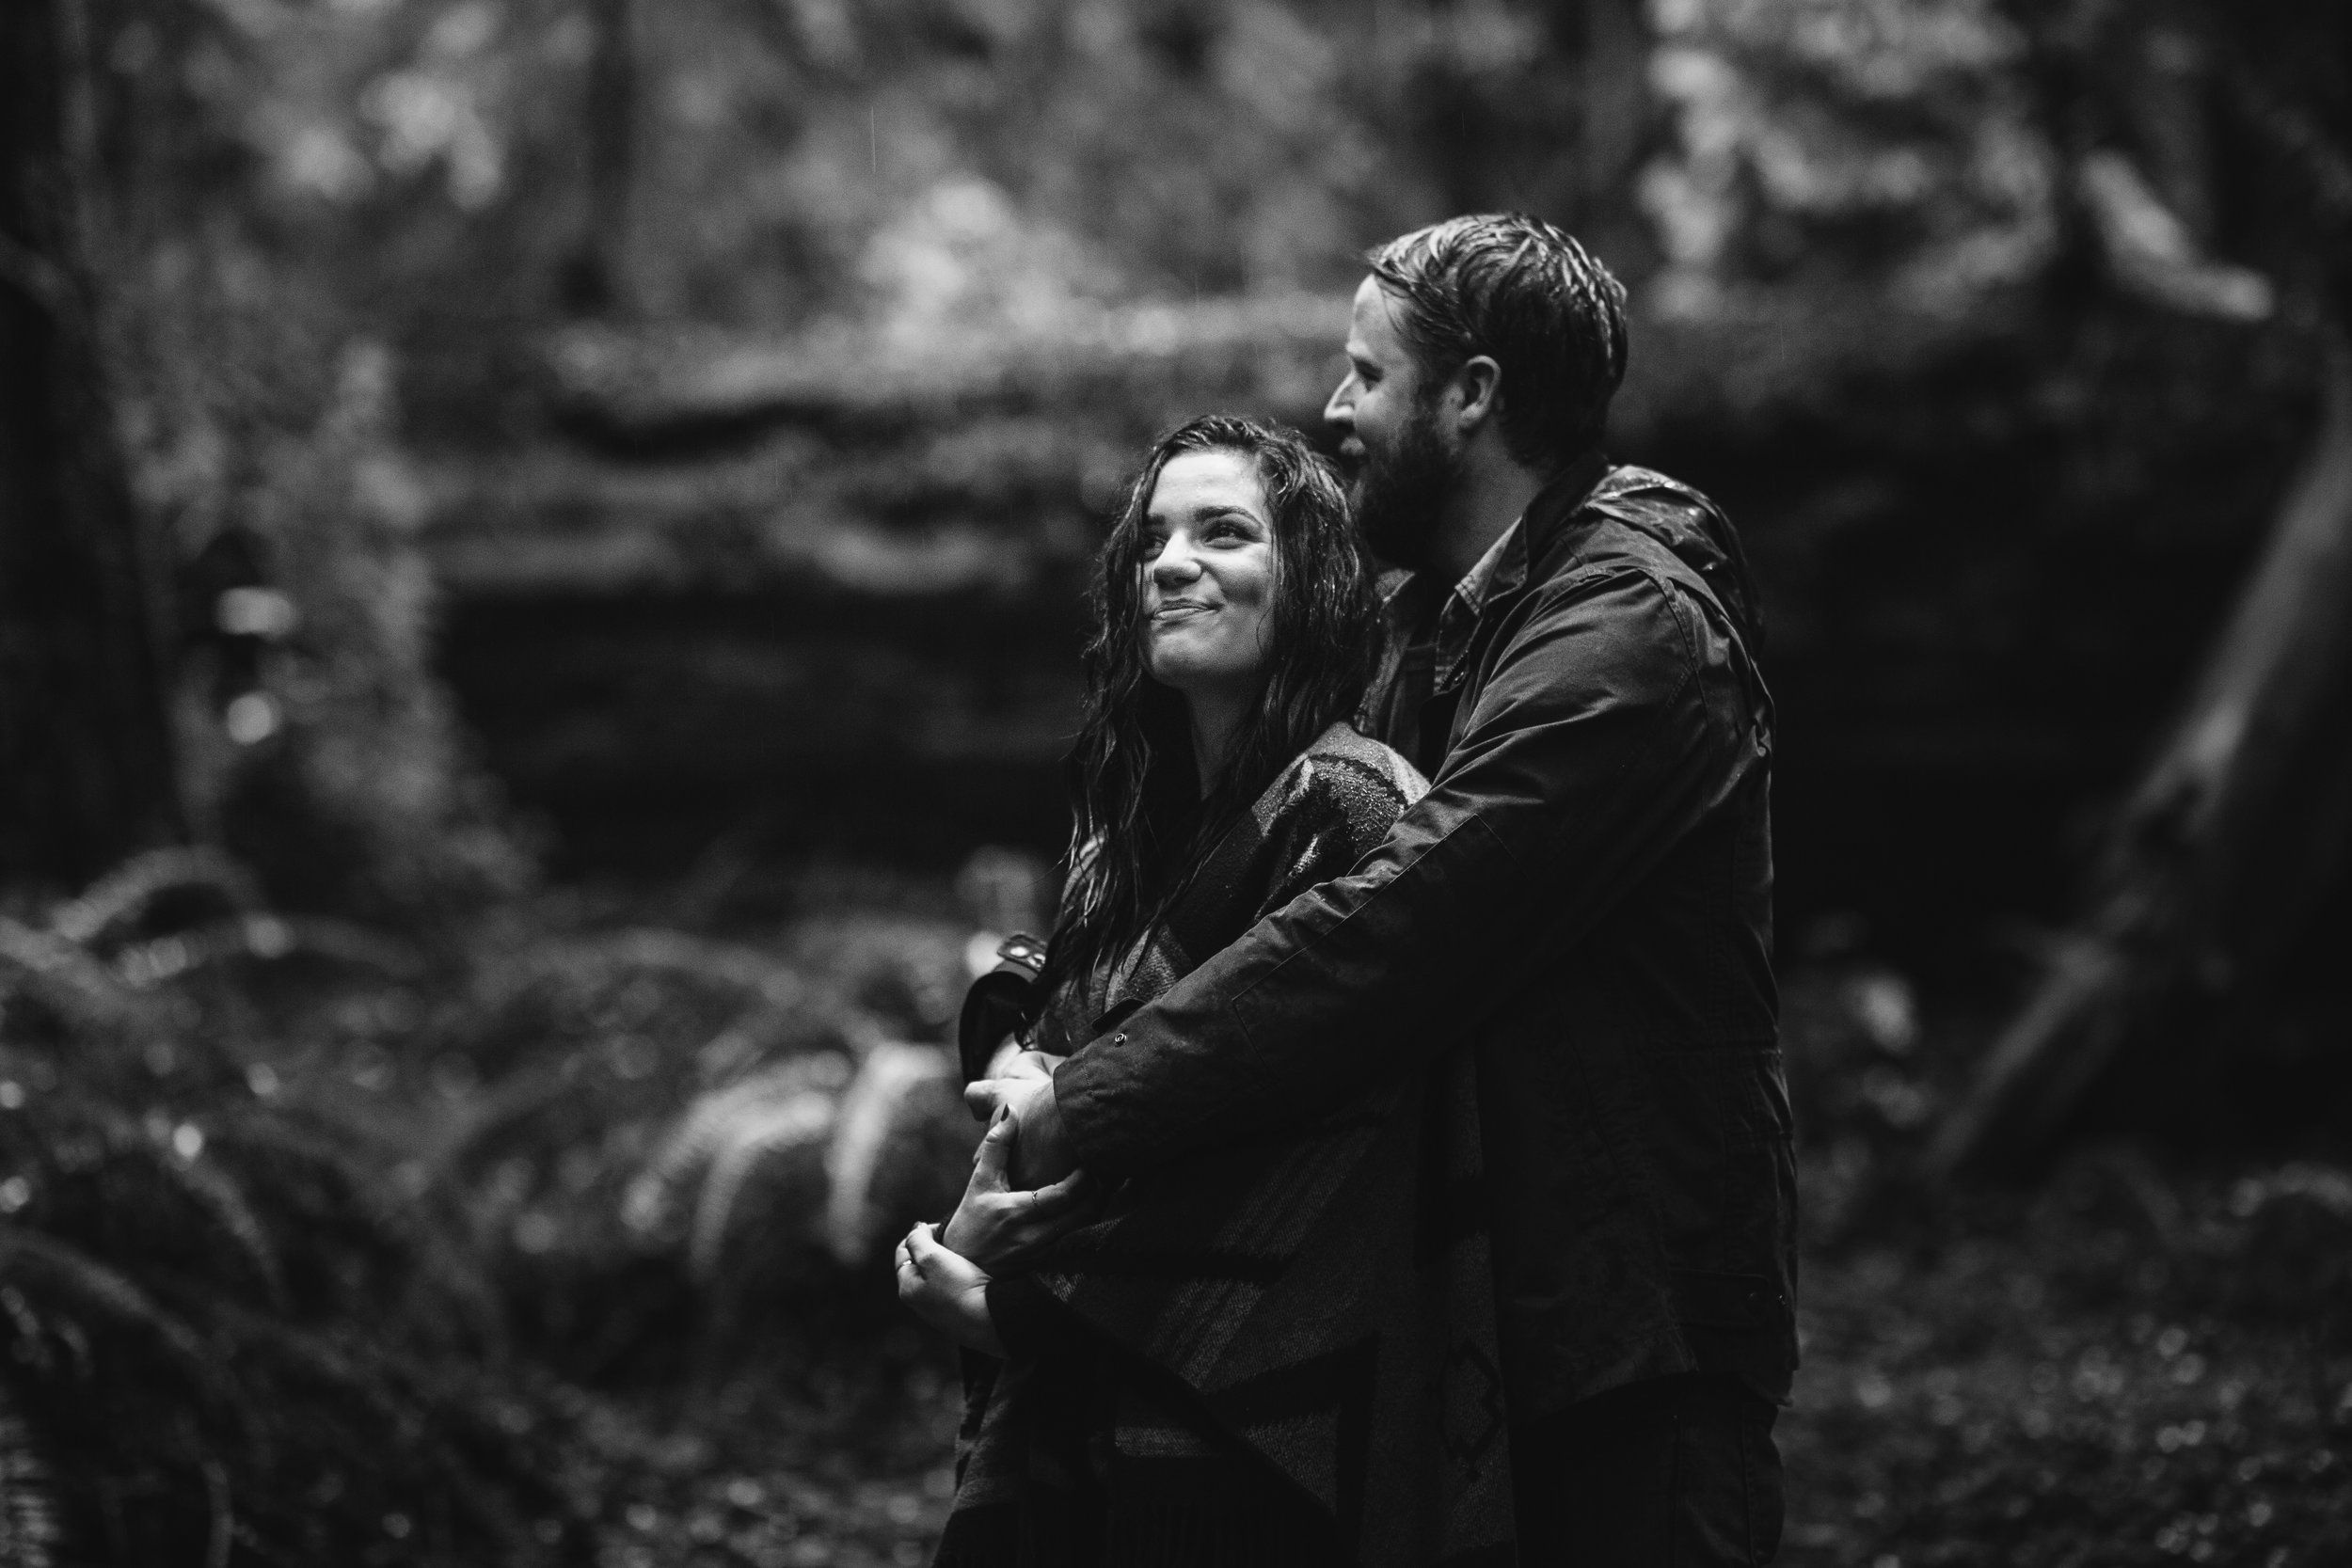 nicole-daacke-photography-redwoods-national-park-forest-rainy-foggy-adventure-engagement-session-humboldt-county-old-growth-redwood-tree-elopement-intimate-wedding-photographer-27.jpg